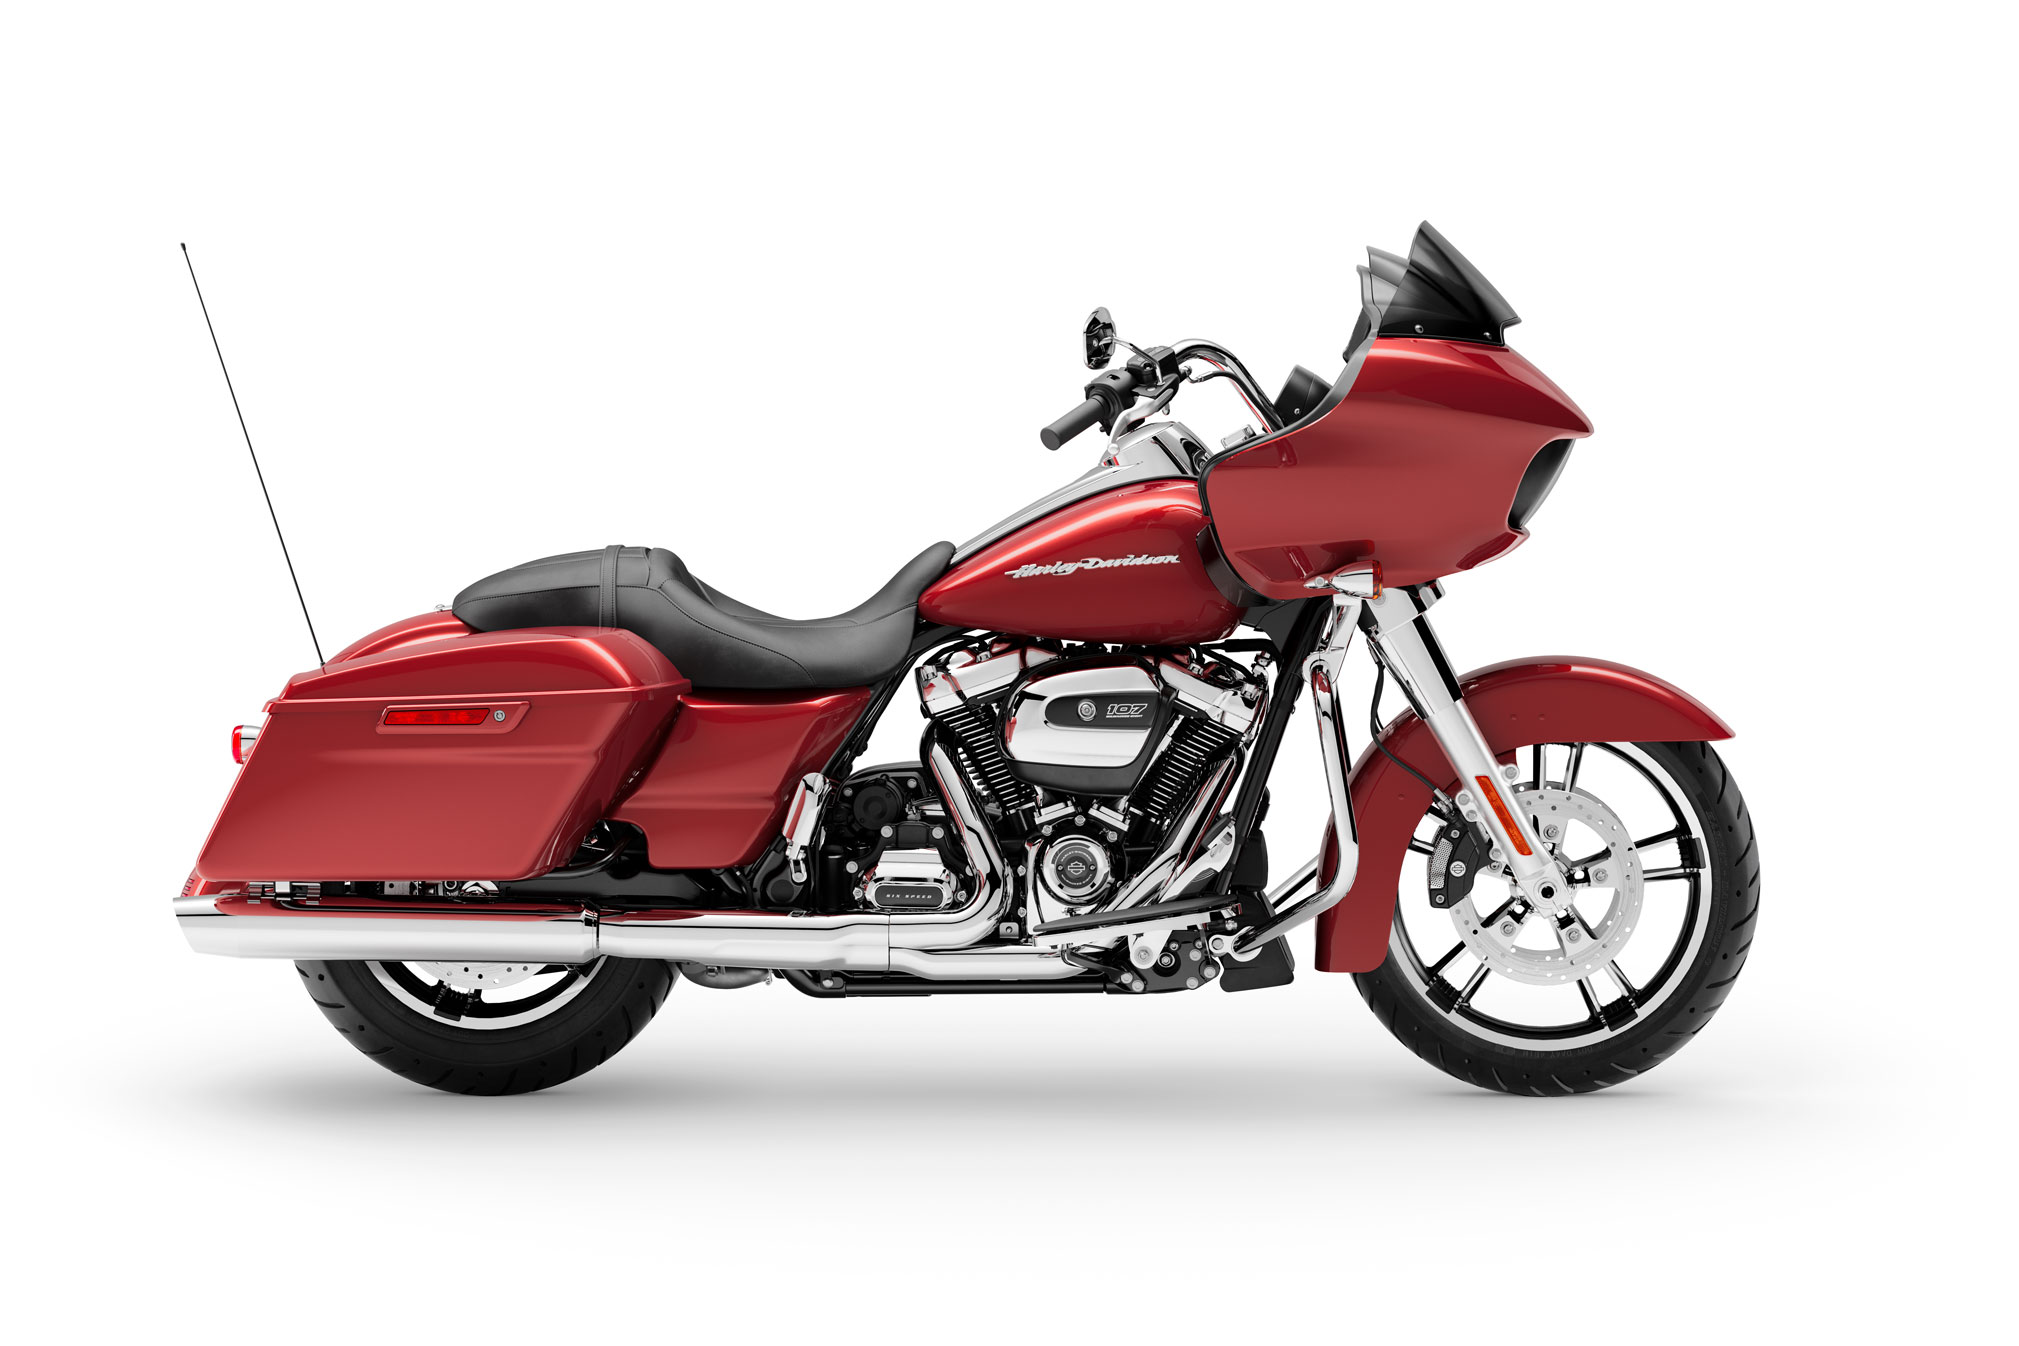 2019 Harley-Davidson Road Glide Guide • Total Motorcycle